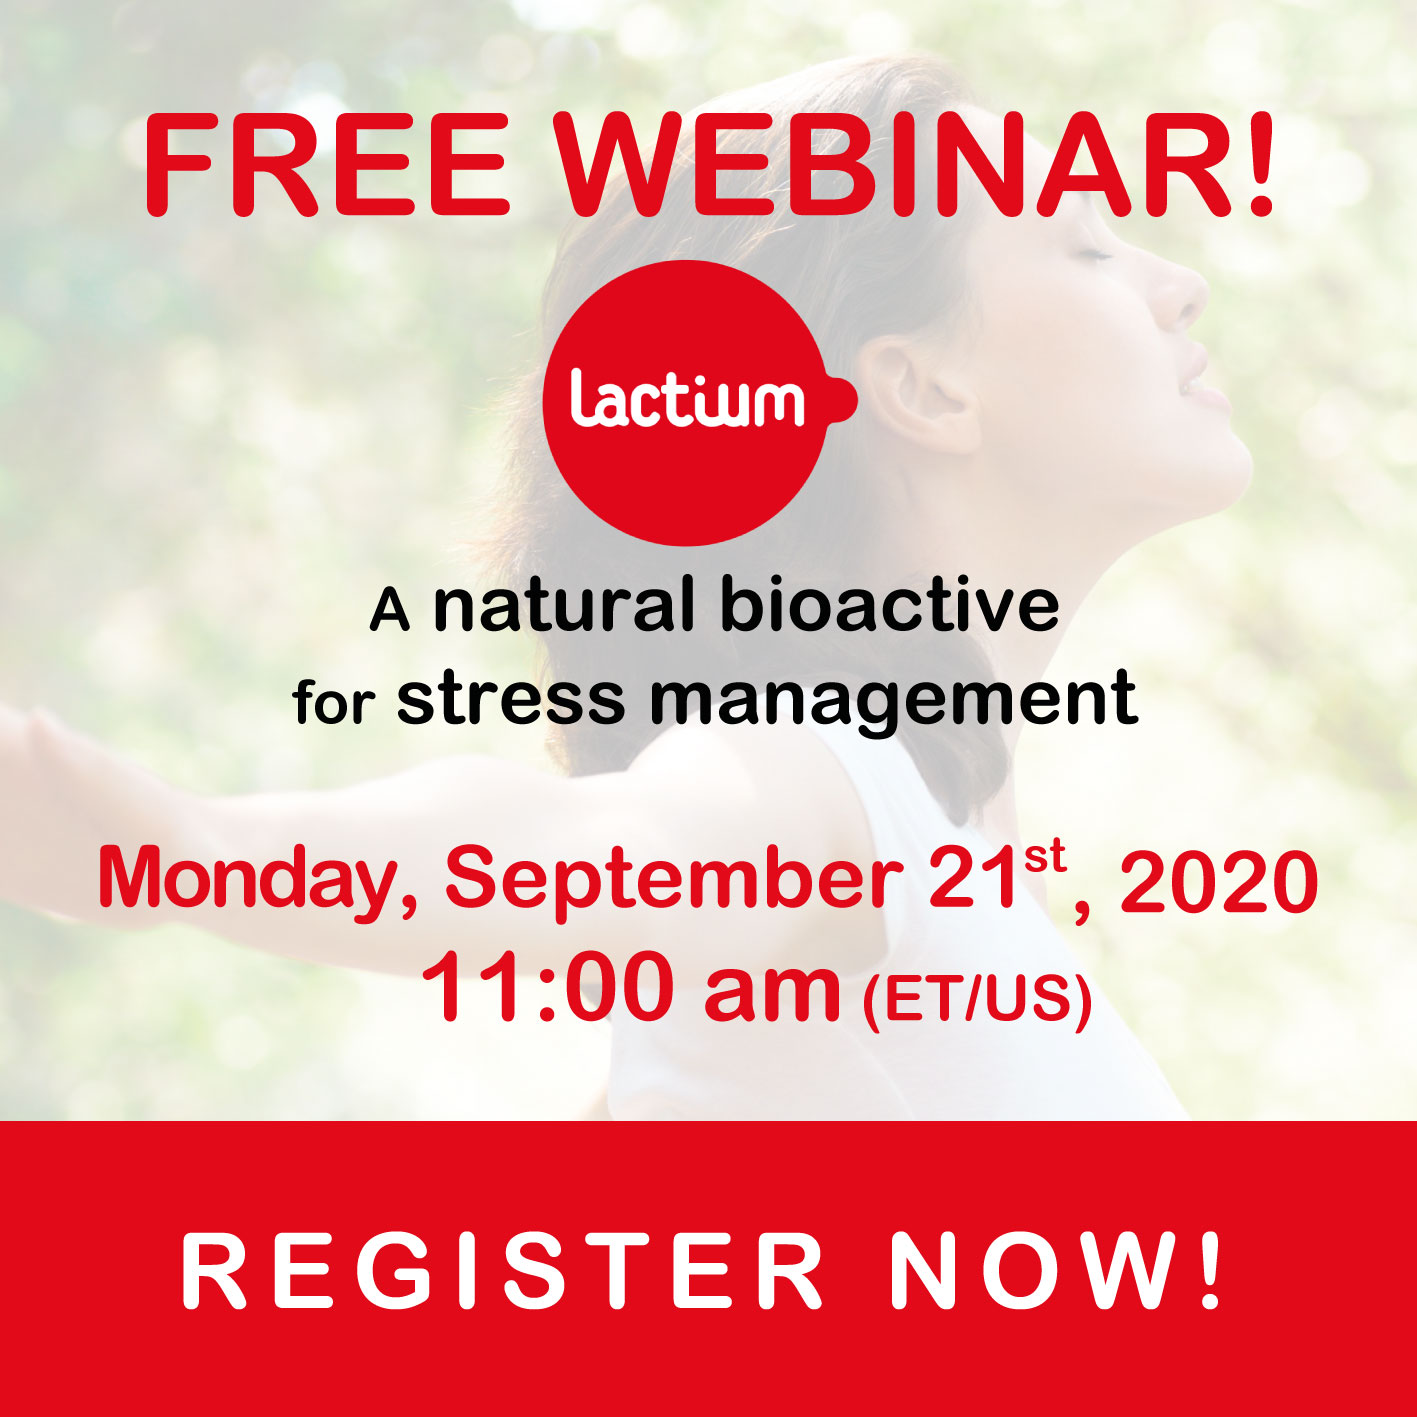 Free webinar Lactium natural bioactive for stress management